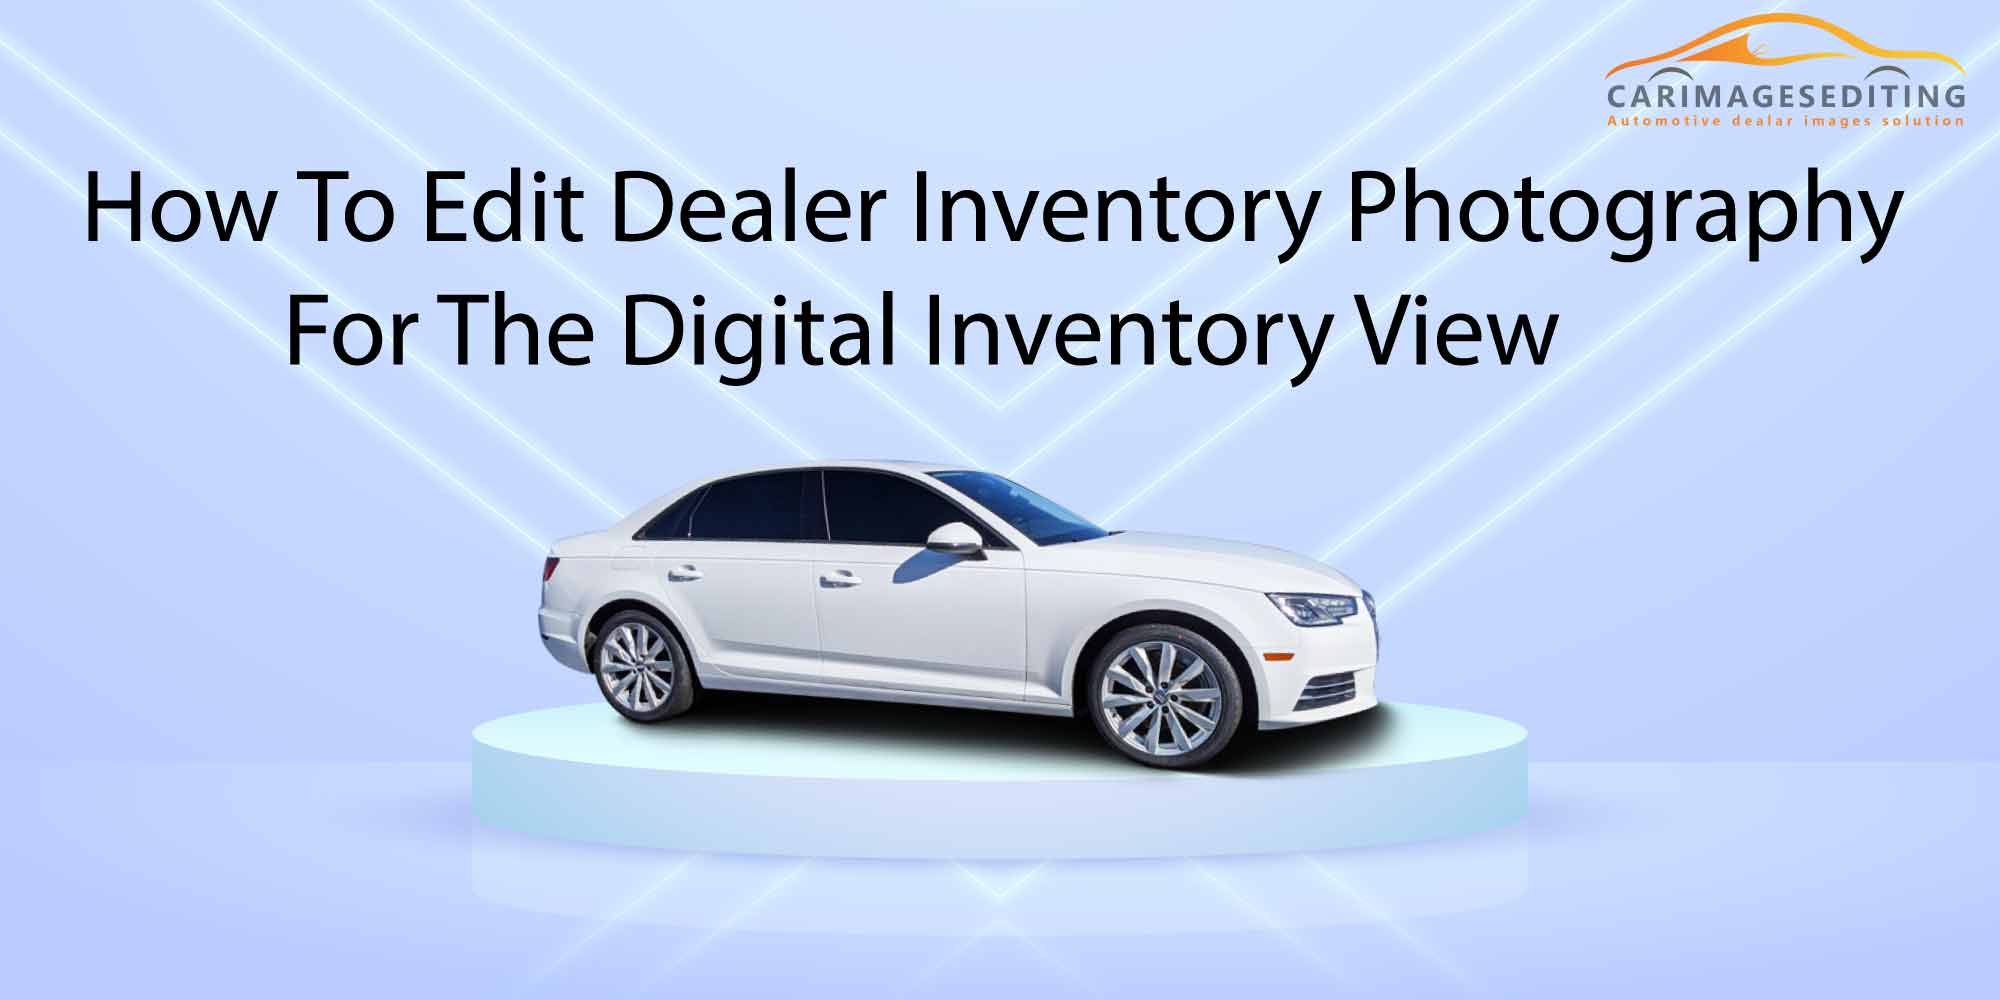 How to Edit Dealer Inventory Photography for The Digital Inventory View